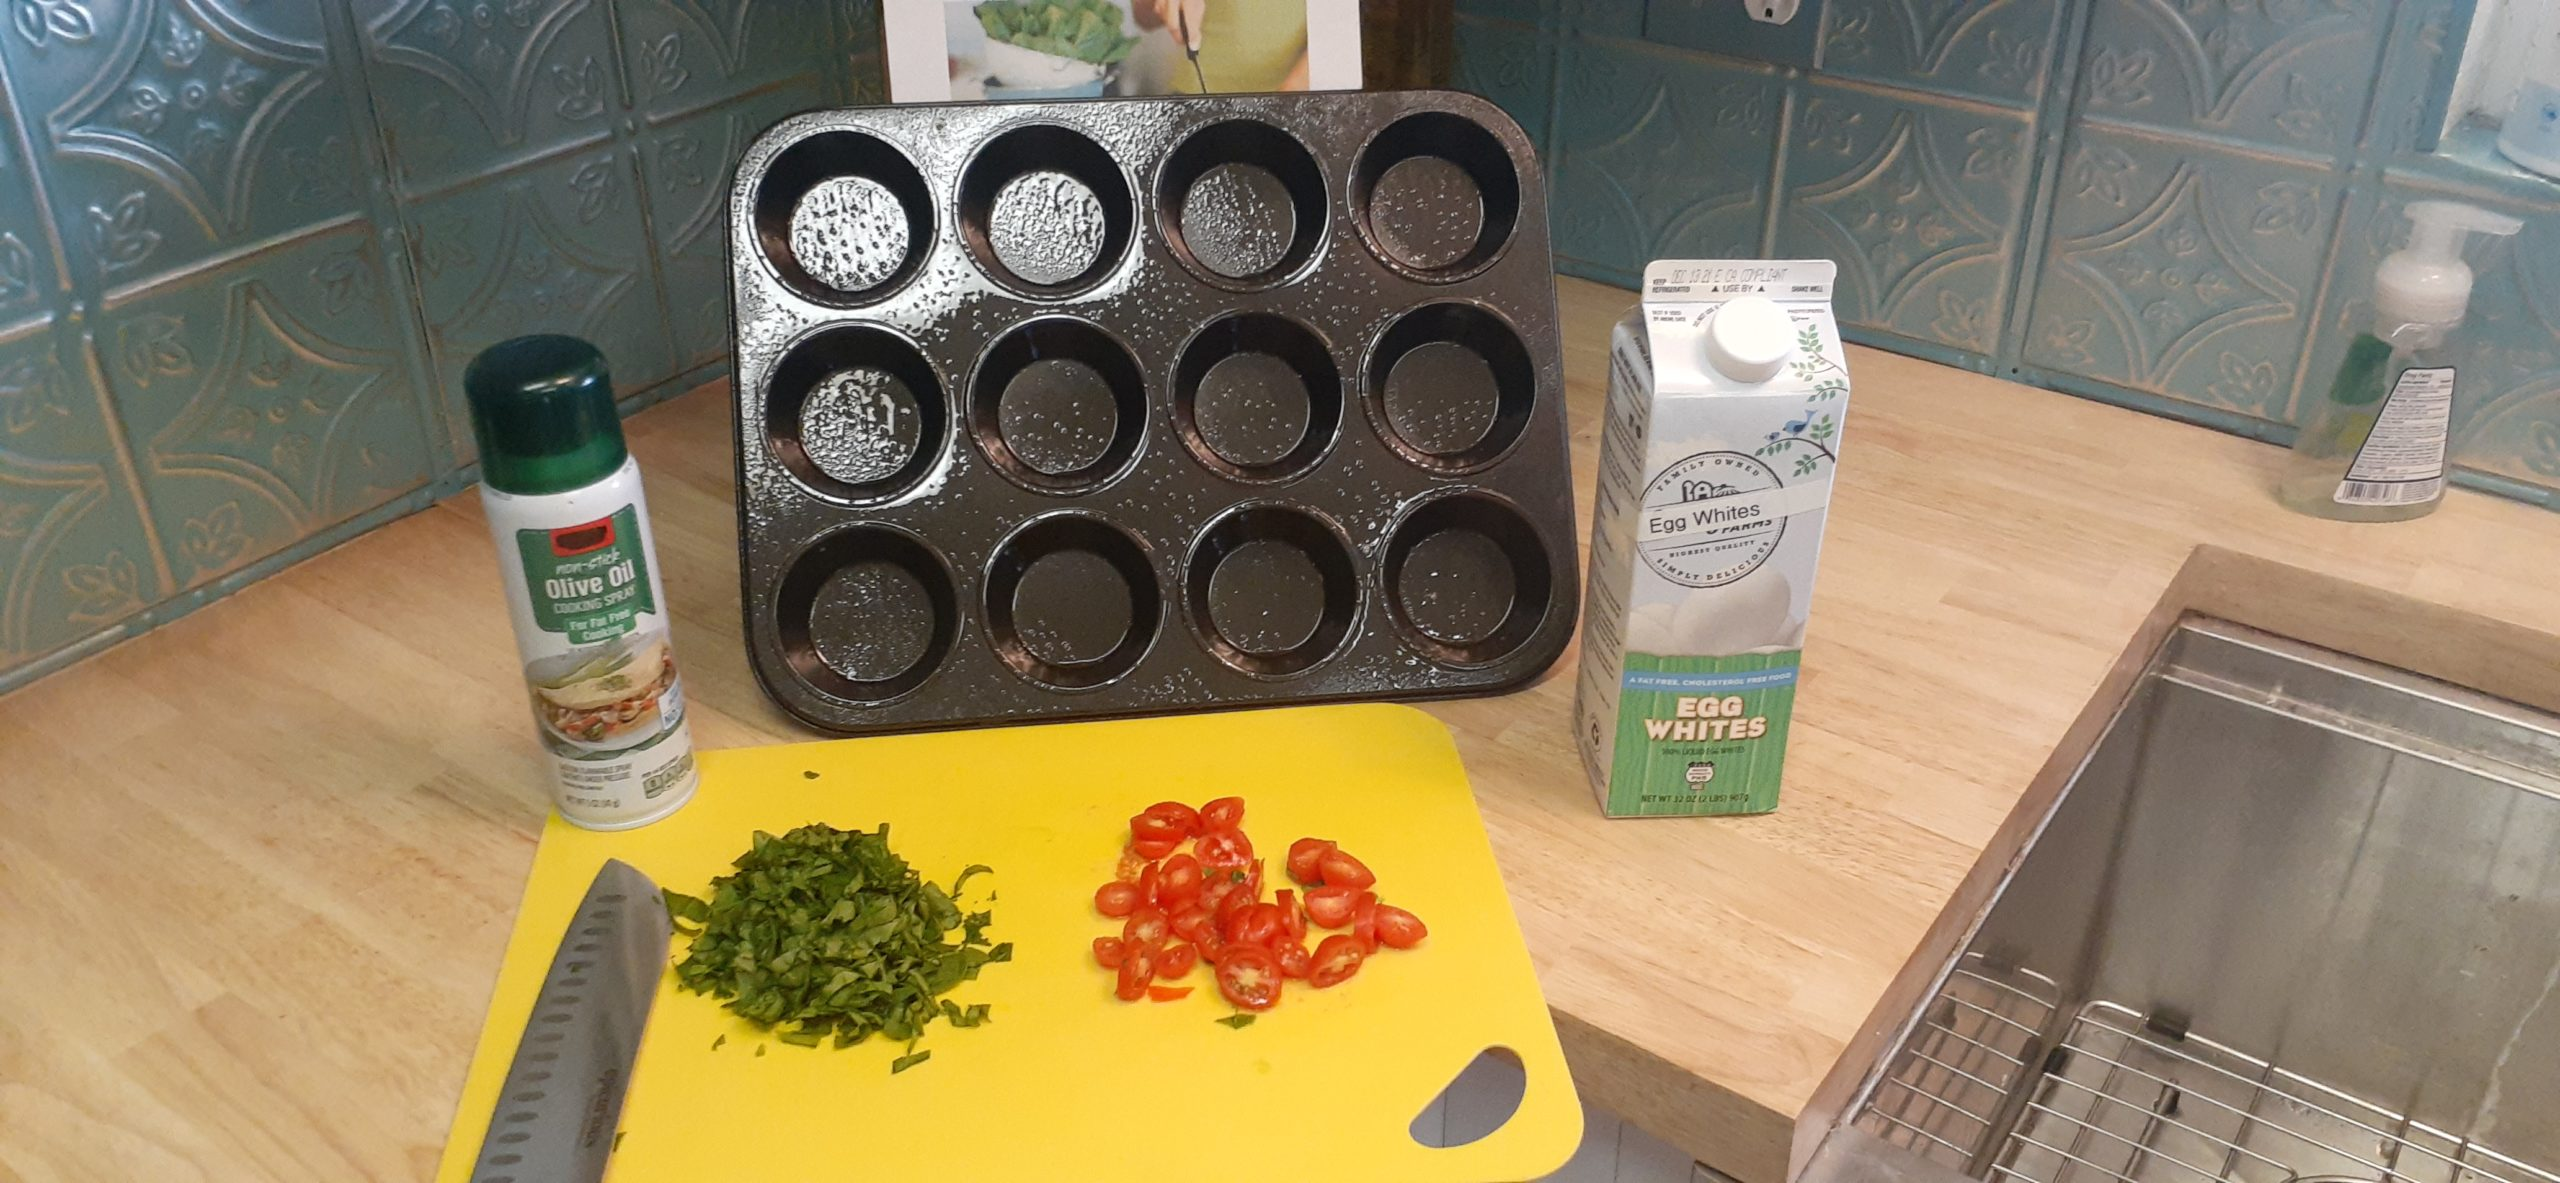 Ingredients cherry tomatoes baby spinach egg whites and 12 count muffin pan